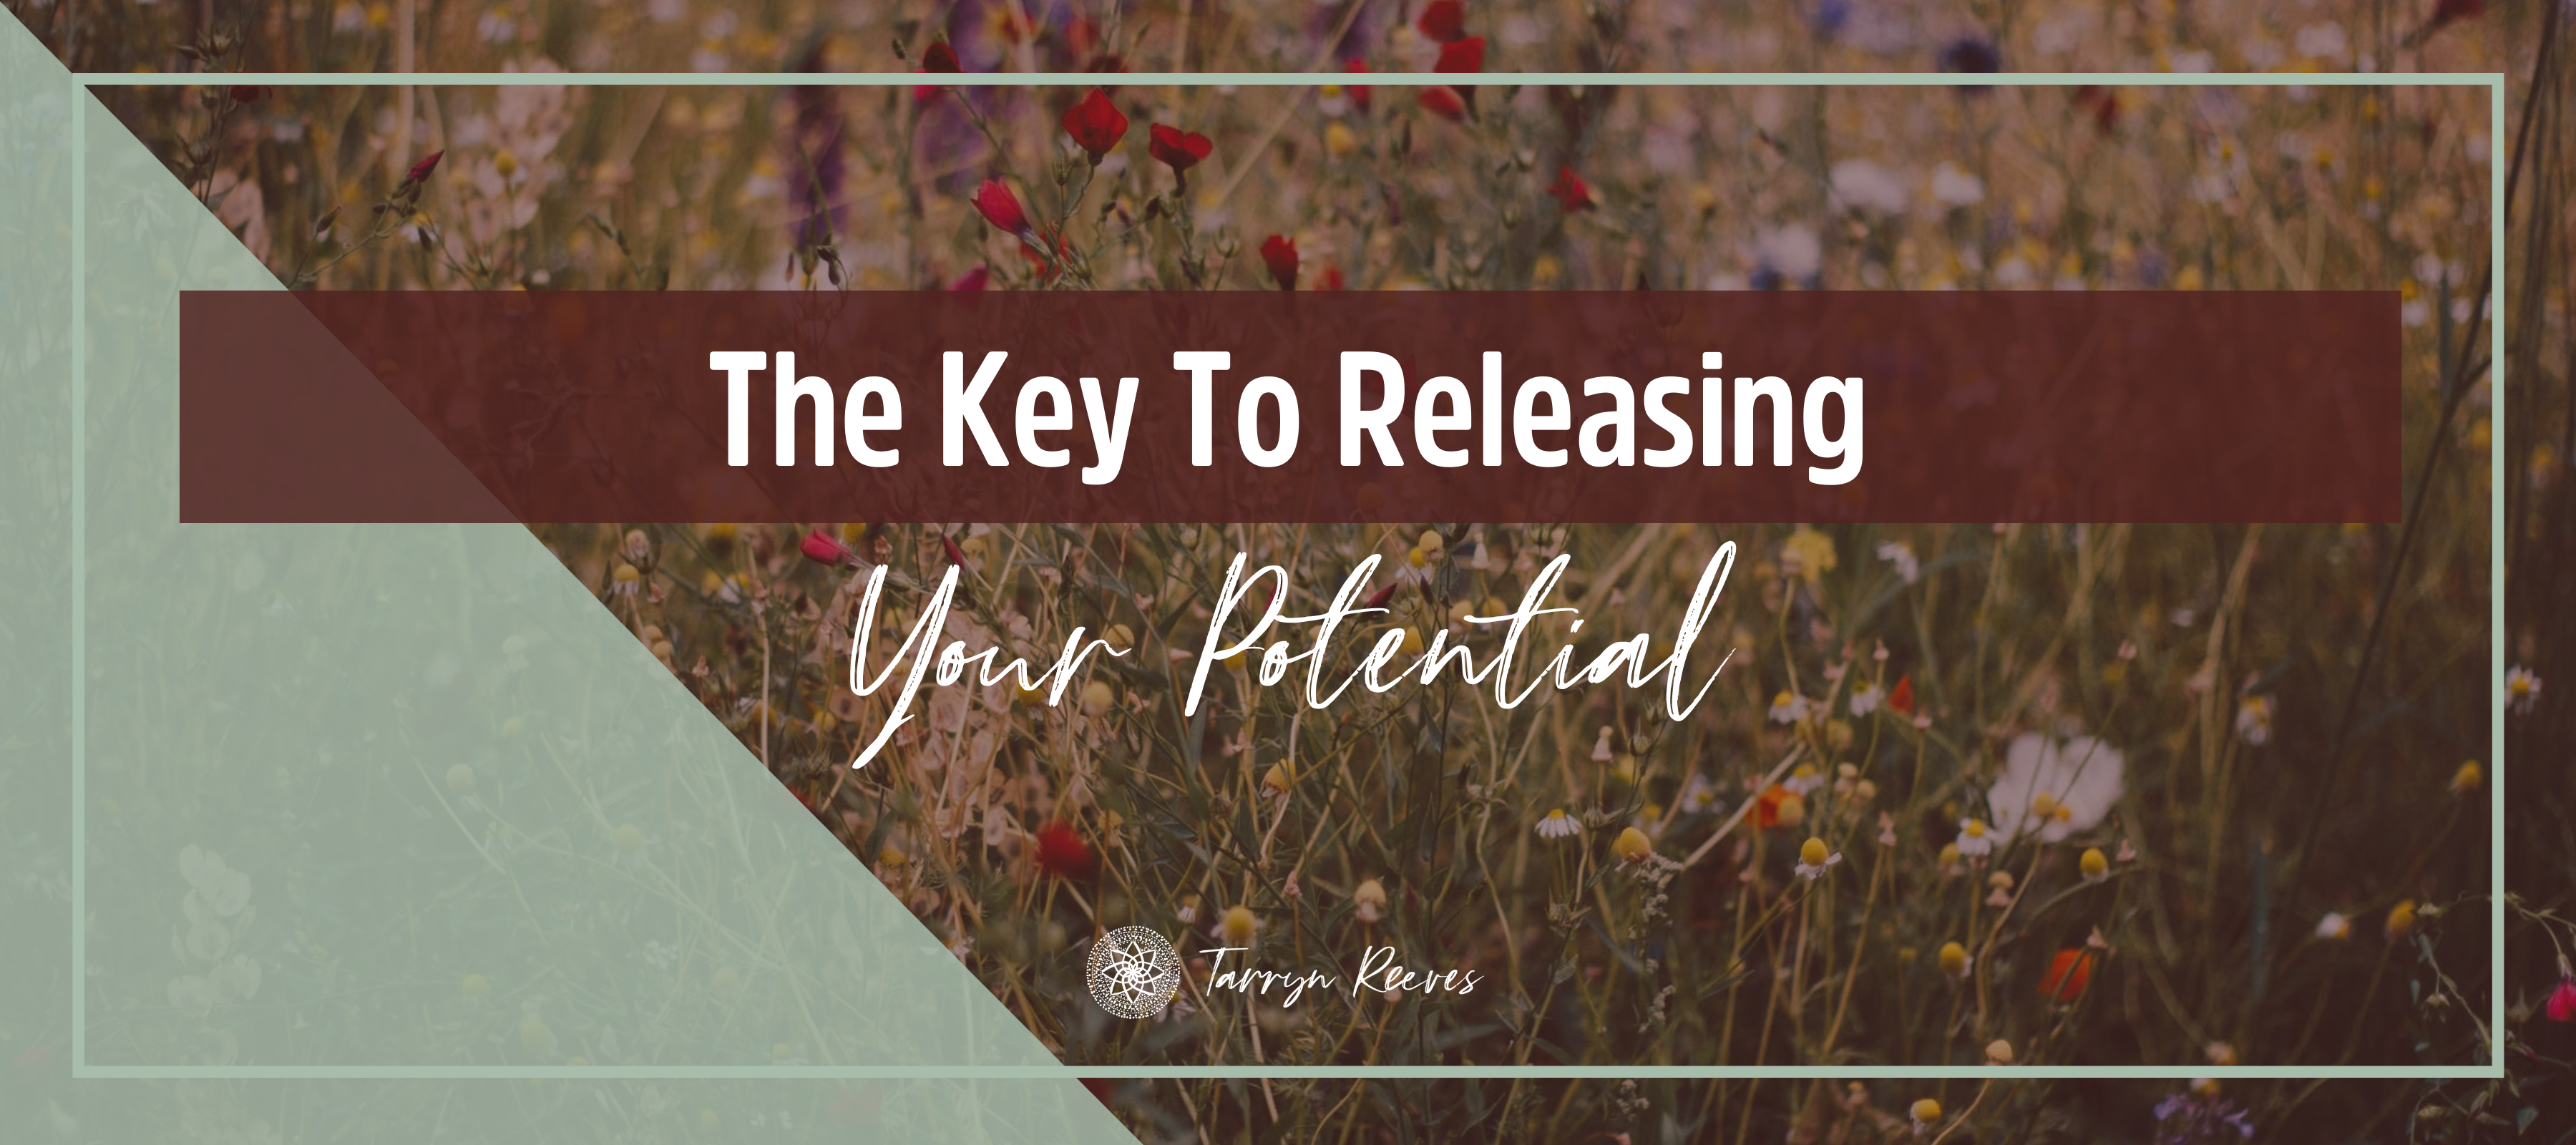 You are currently viewing The Key to Releasing Your Potential